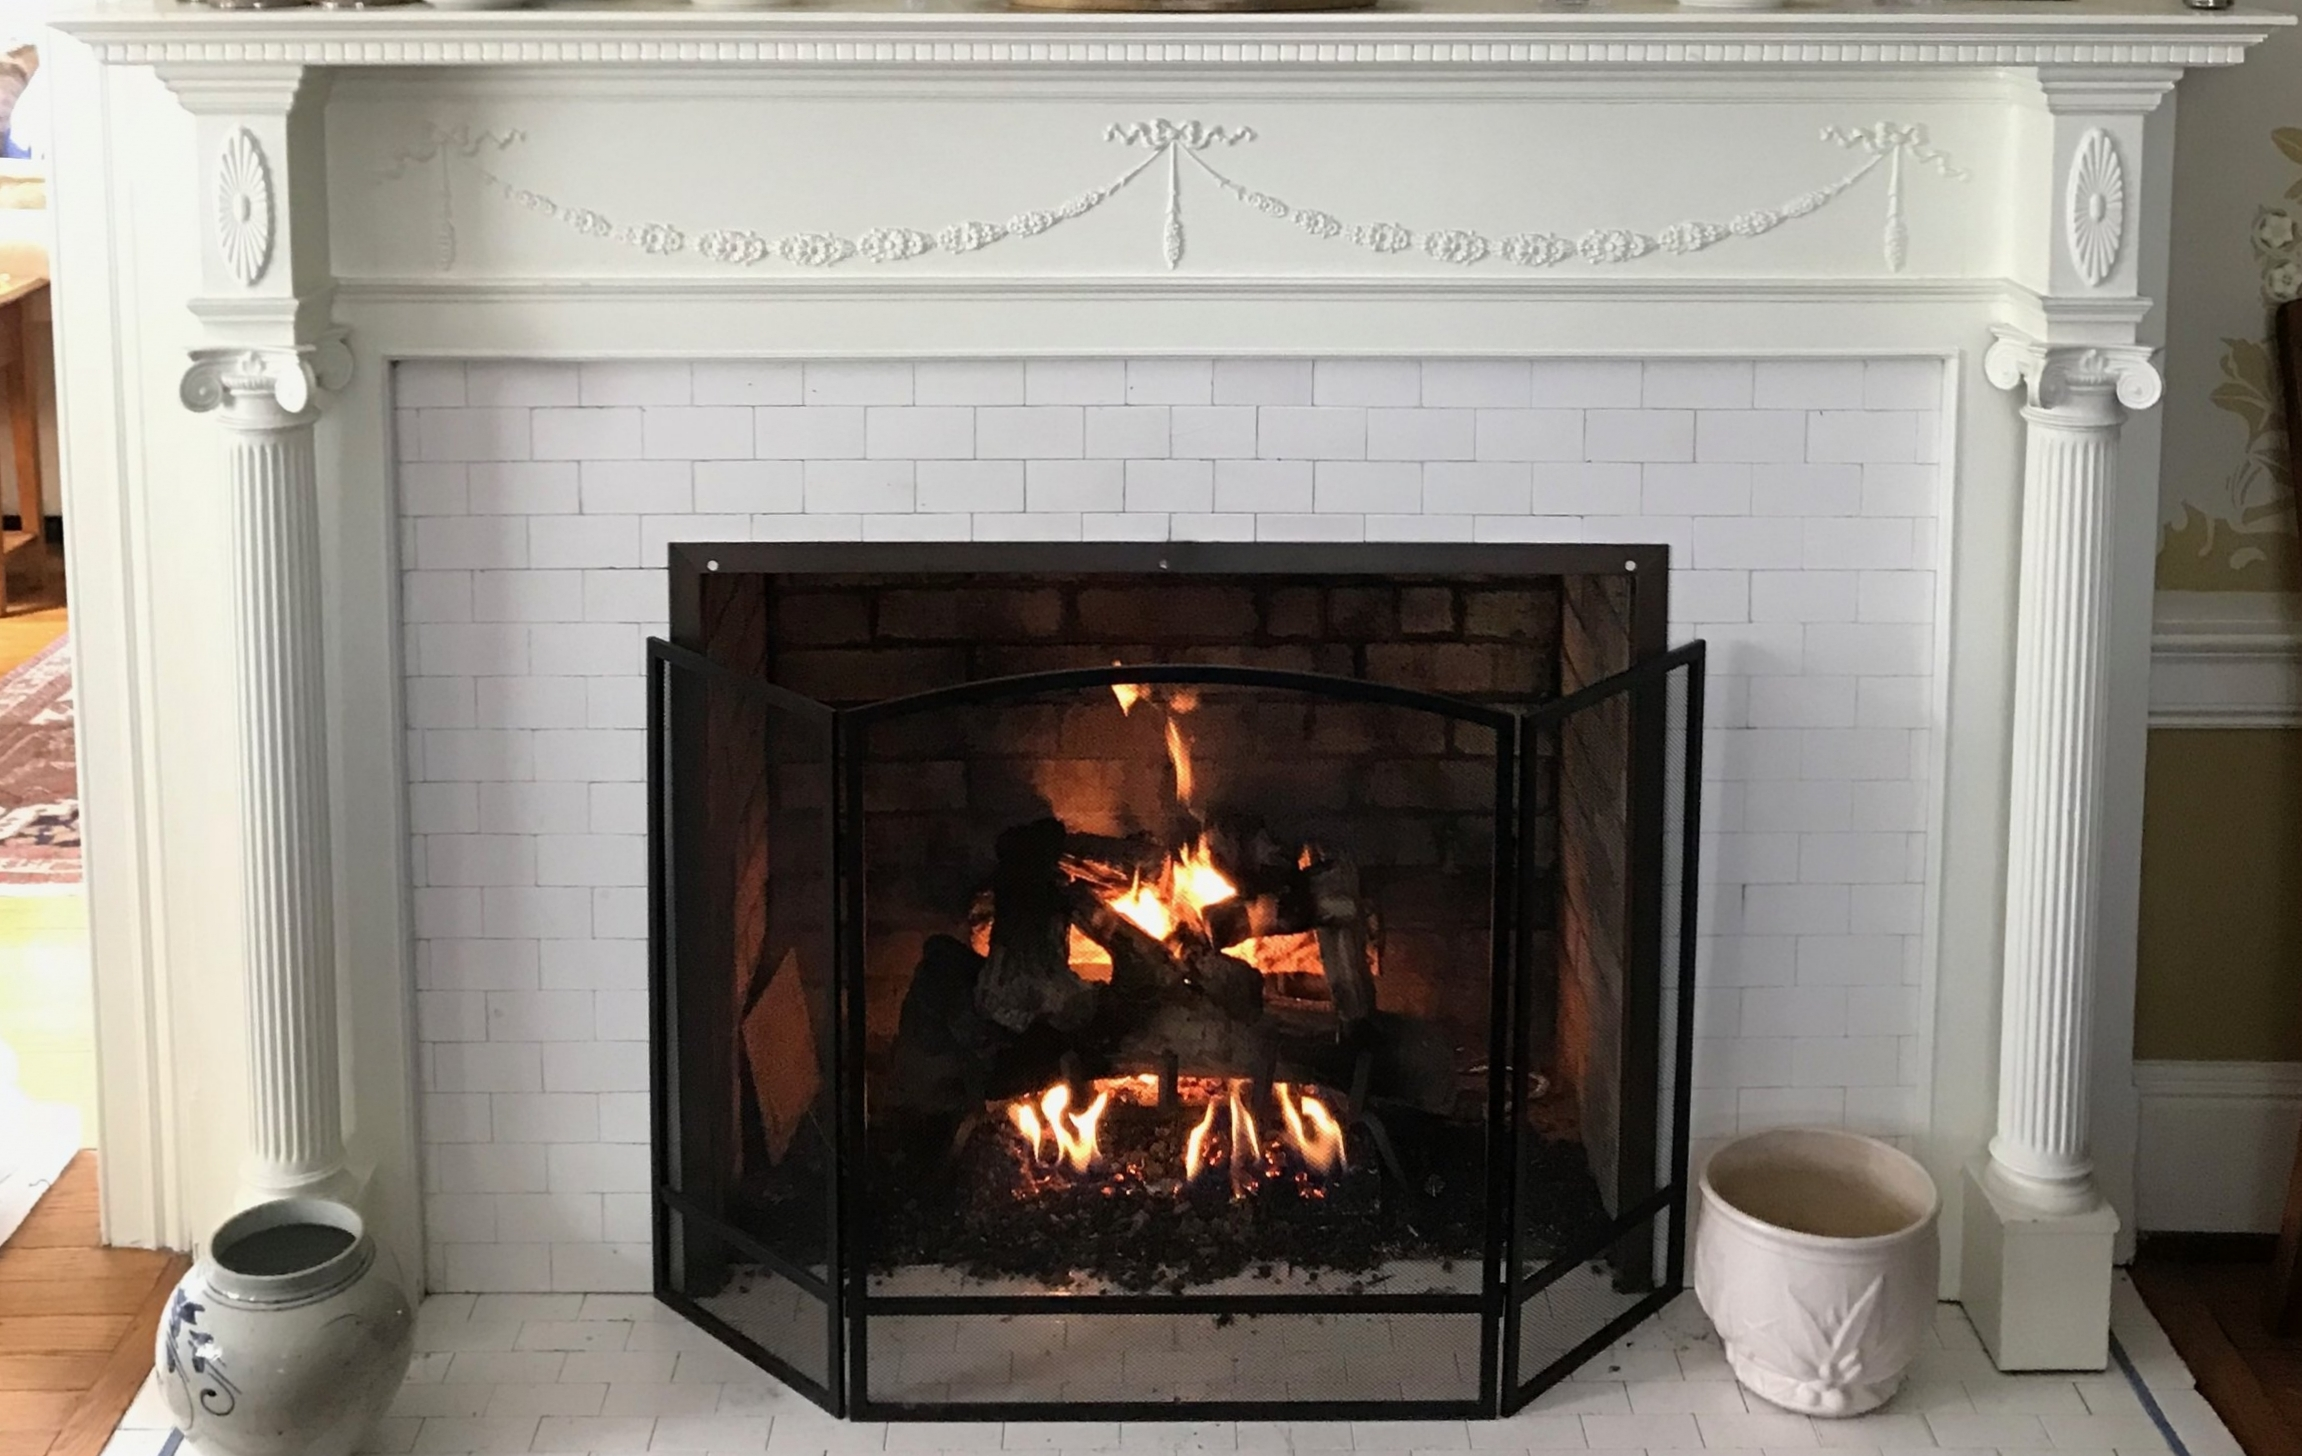 Relax By The Fire With A Glass Of Wine -